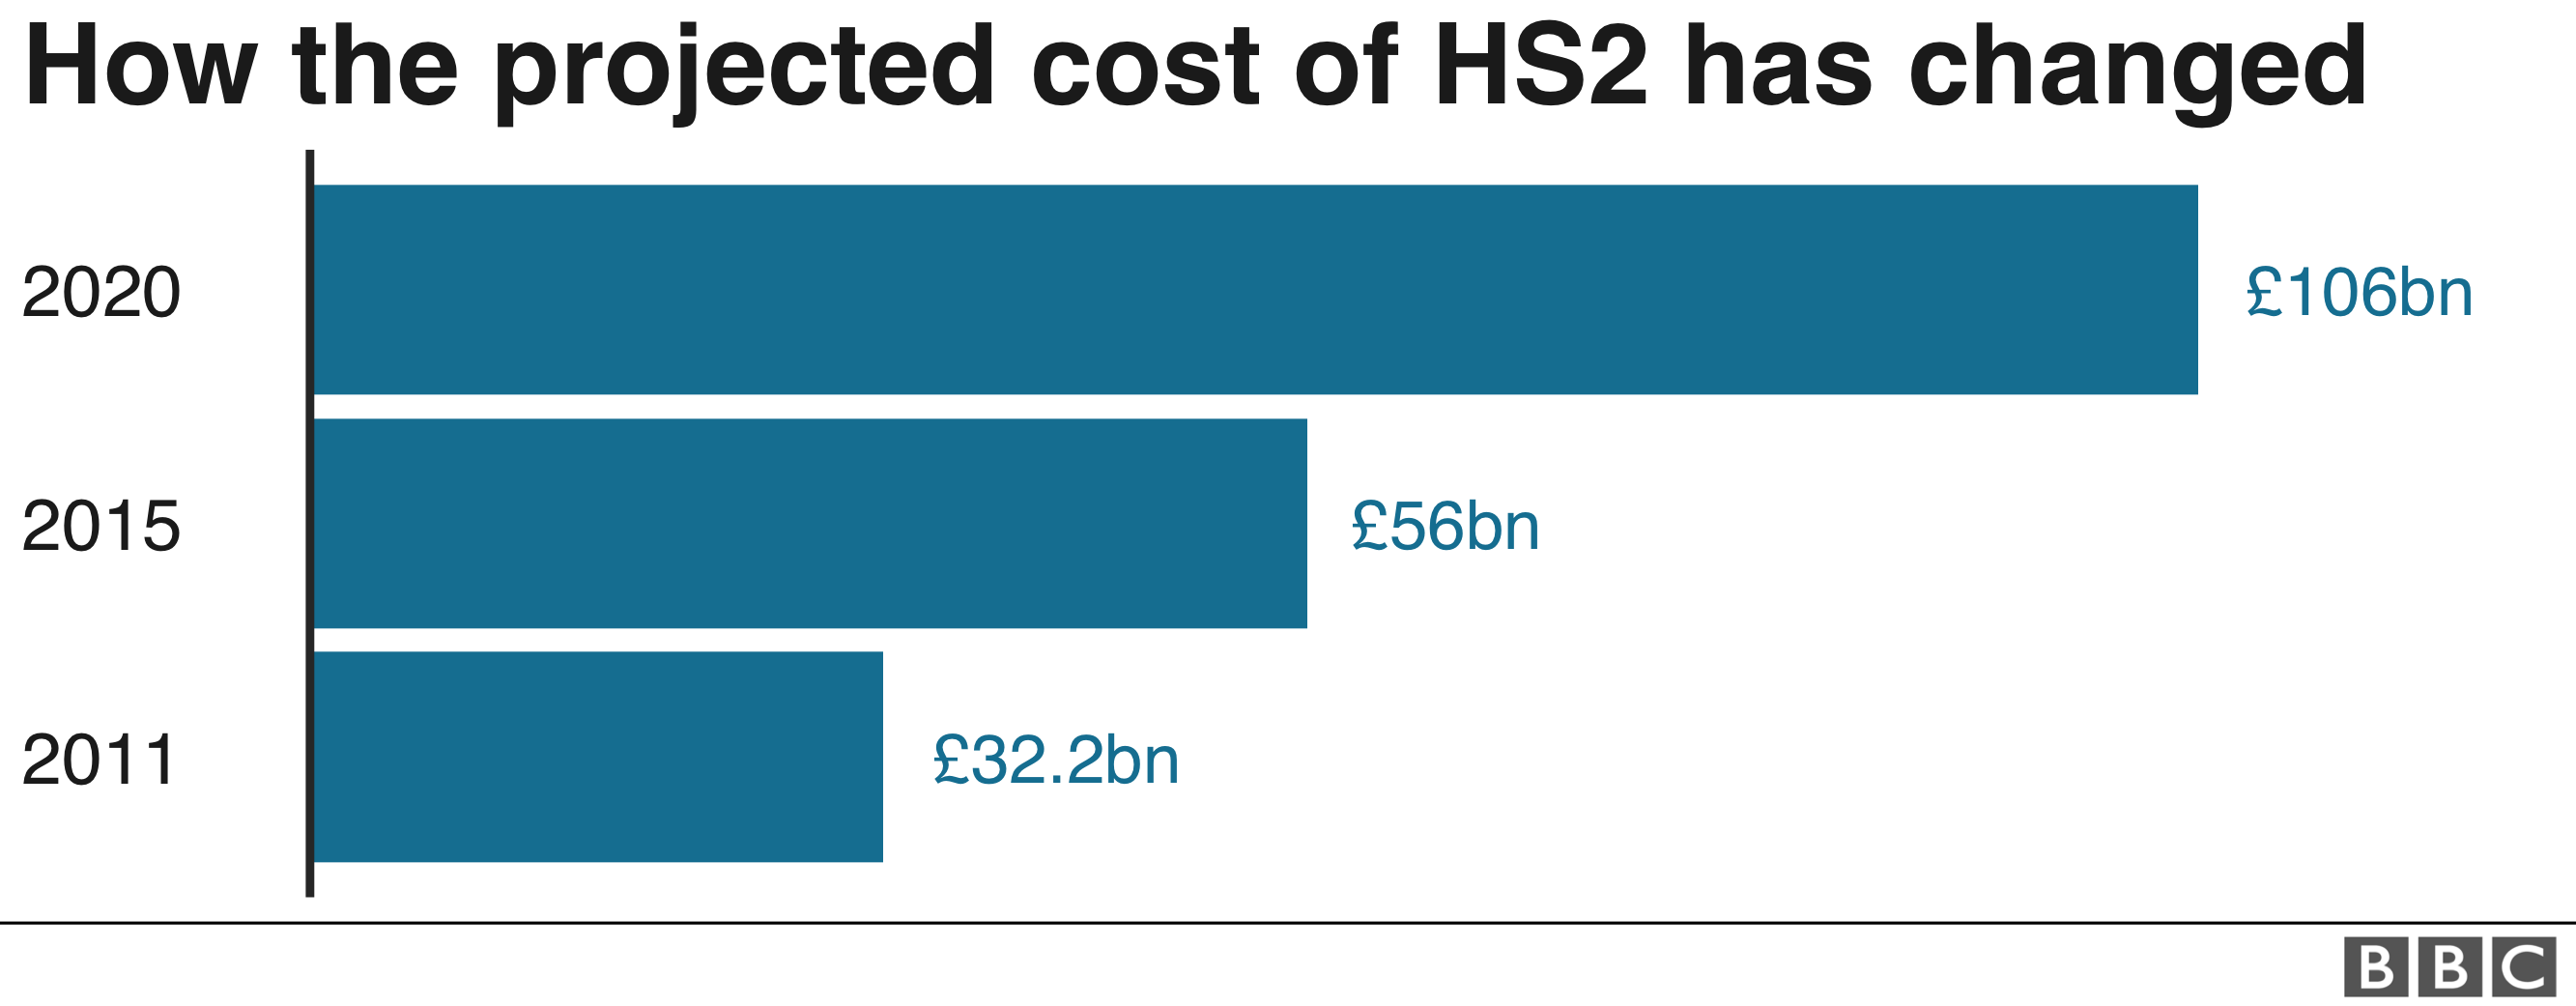 HS2 projected cost bar chart